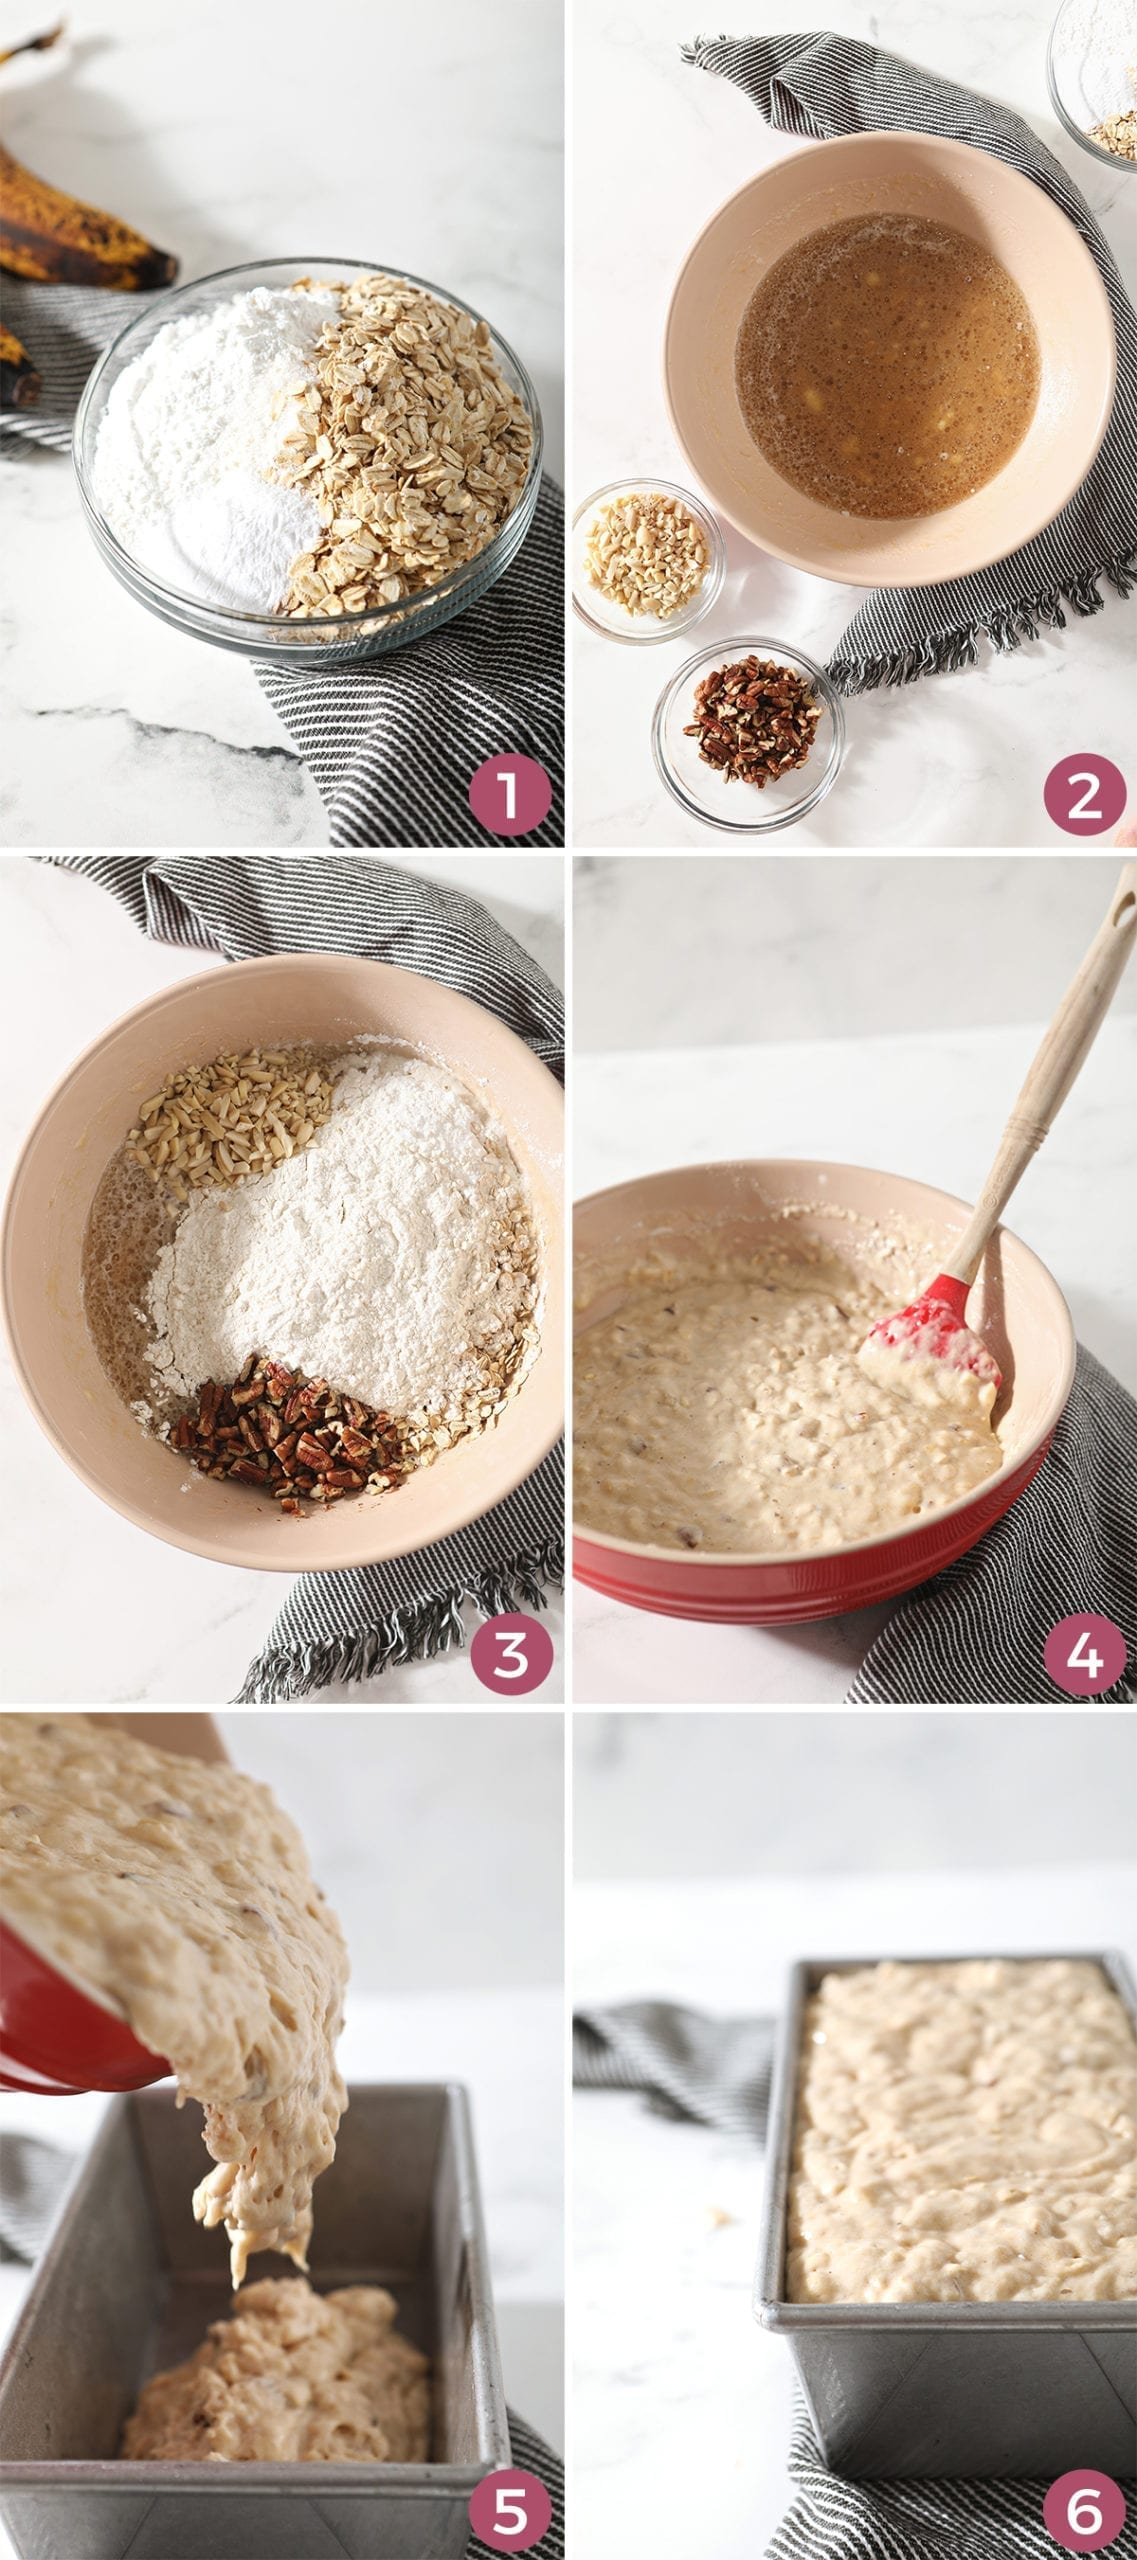 Collage of dry ingredients that go into making the bread, including six images showing step by step how to make it